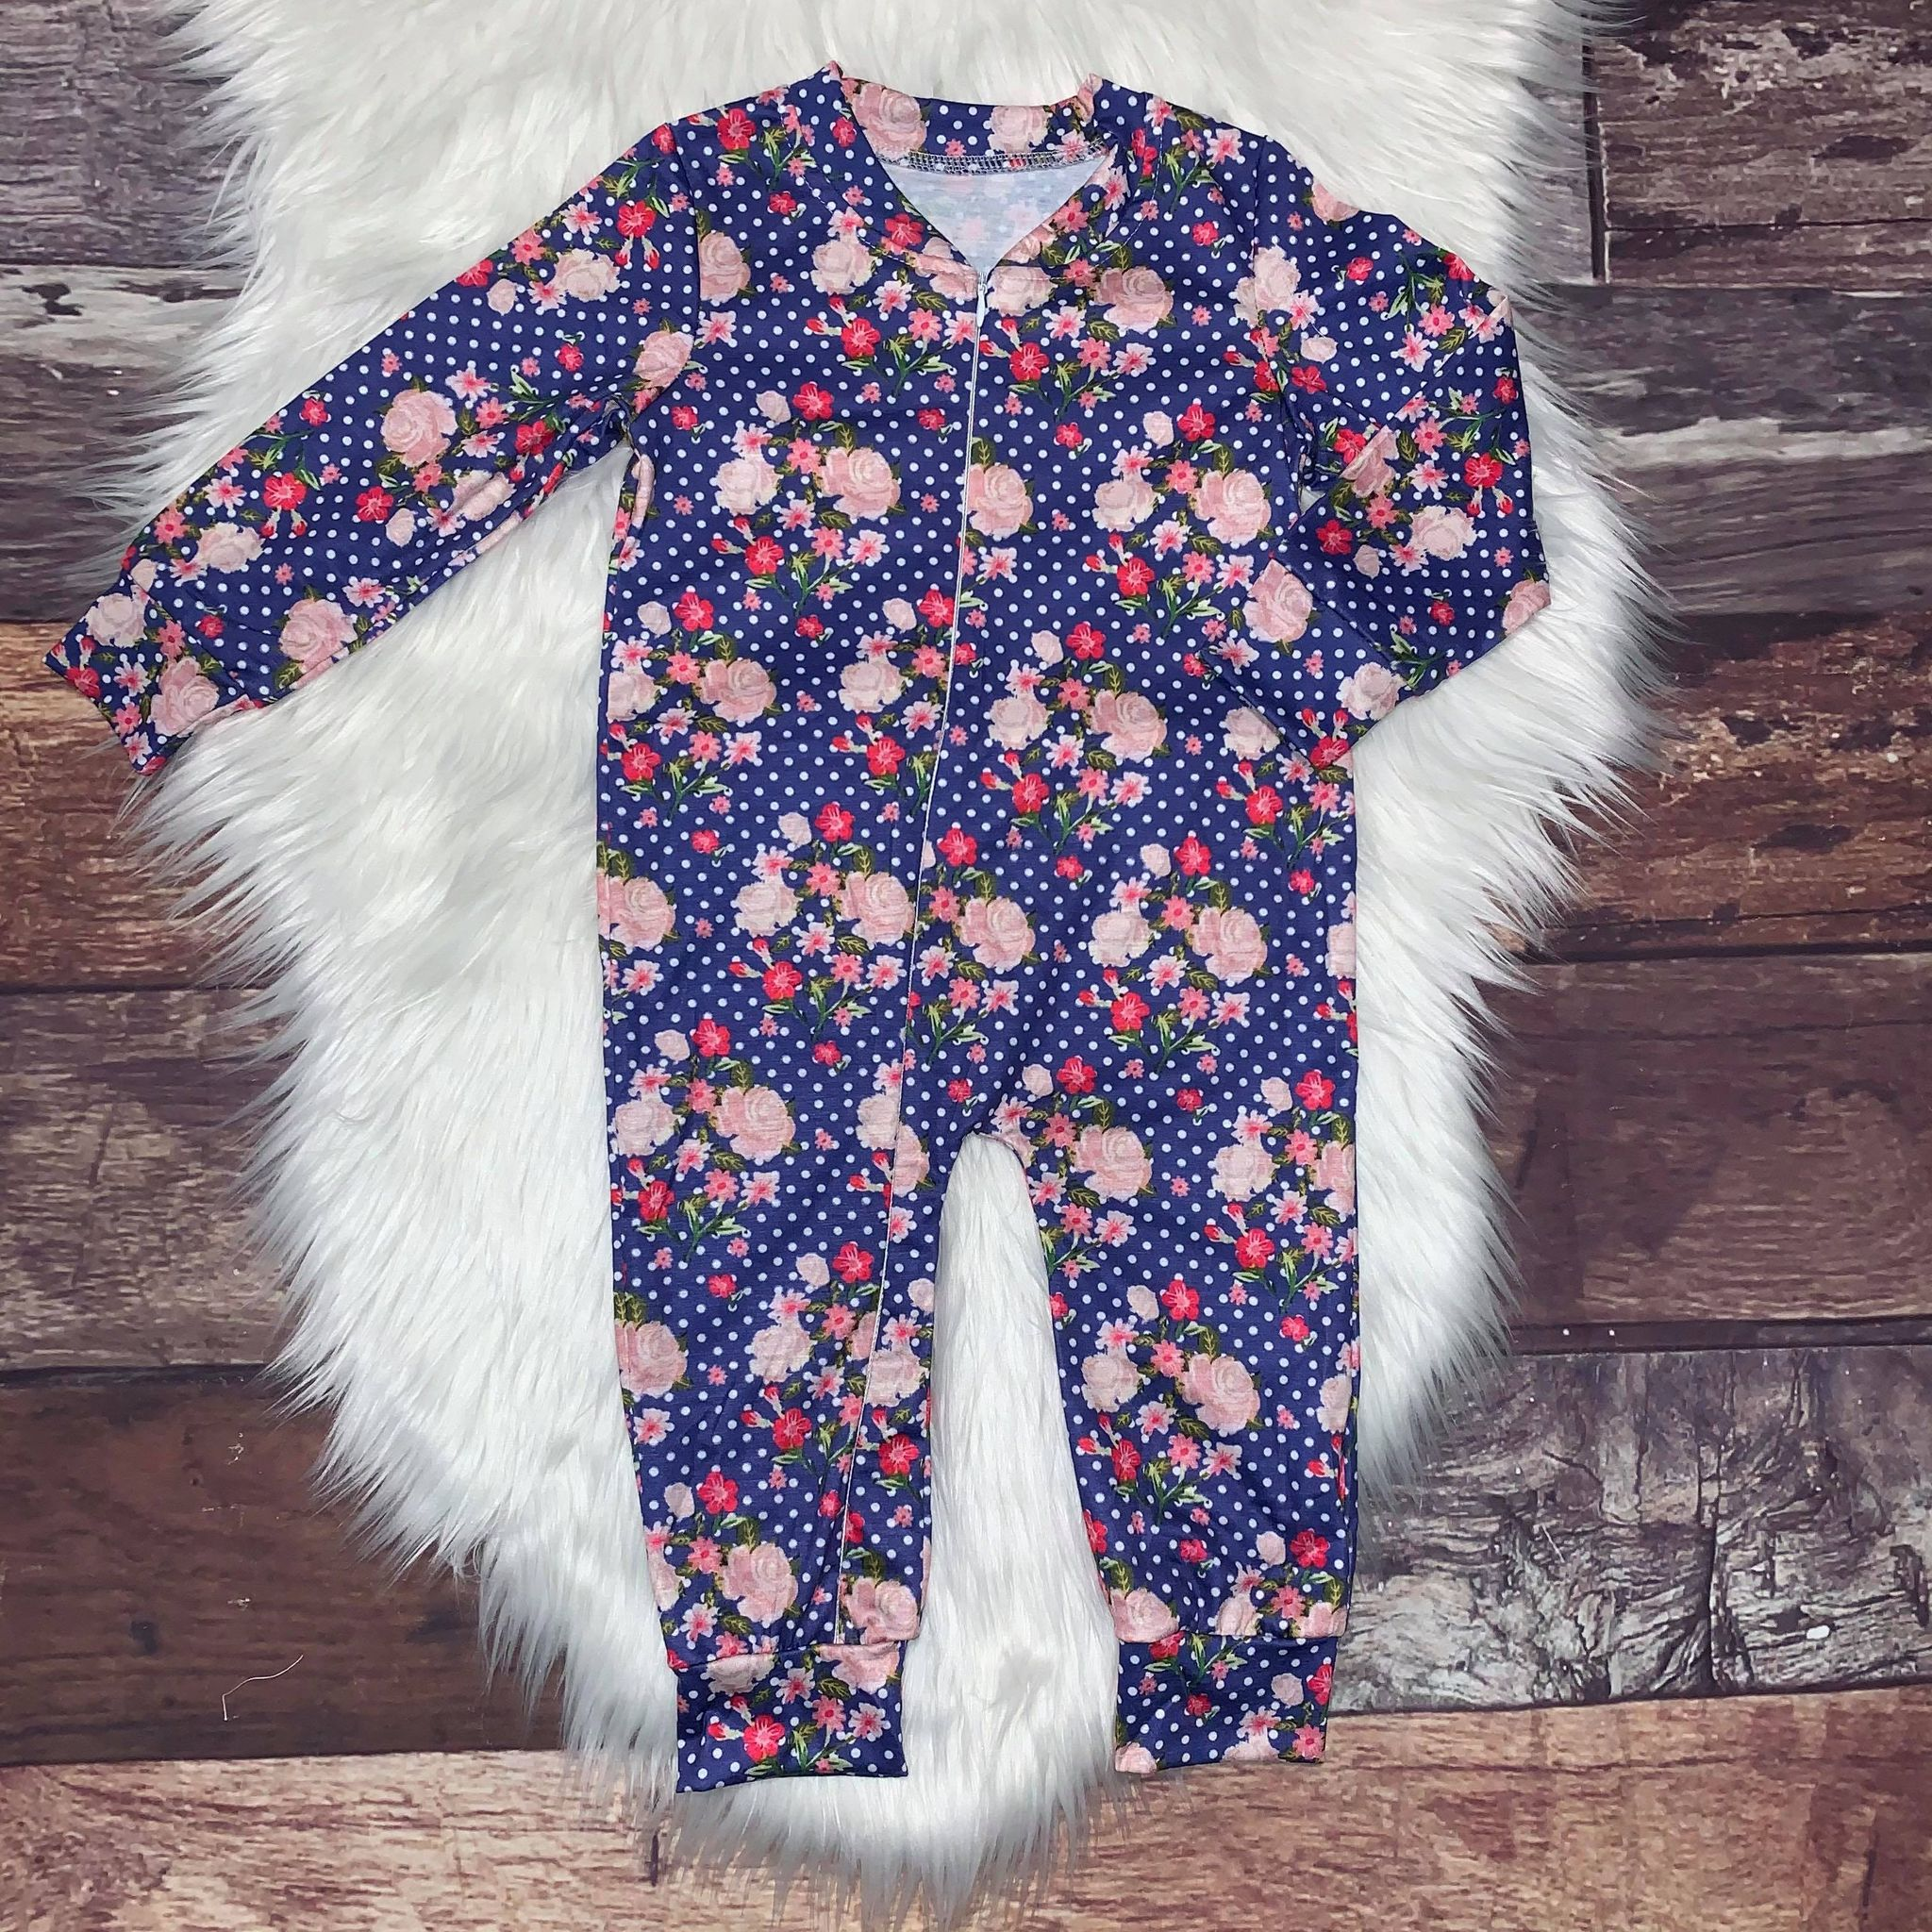 Zip-Up Romper Blue Floral Polka Dot